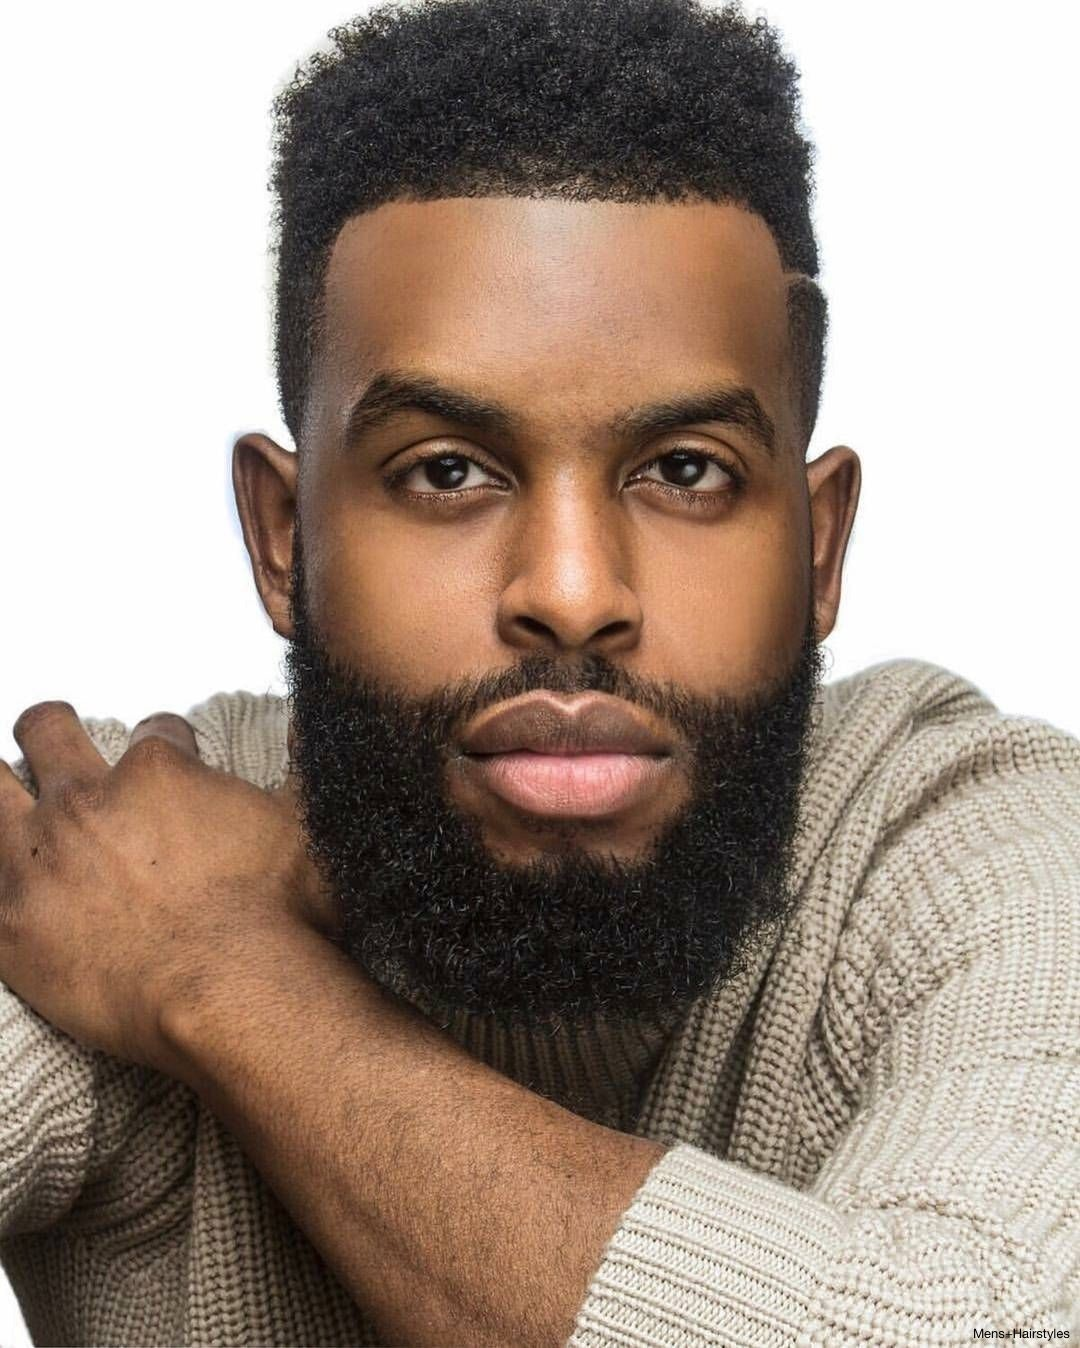 Watch 60 Beard Styles For Black Men – Masculine Facial Hair Ideas video